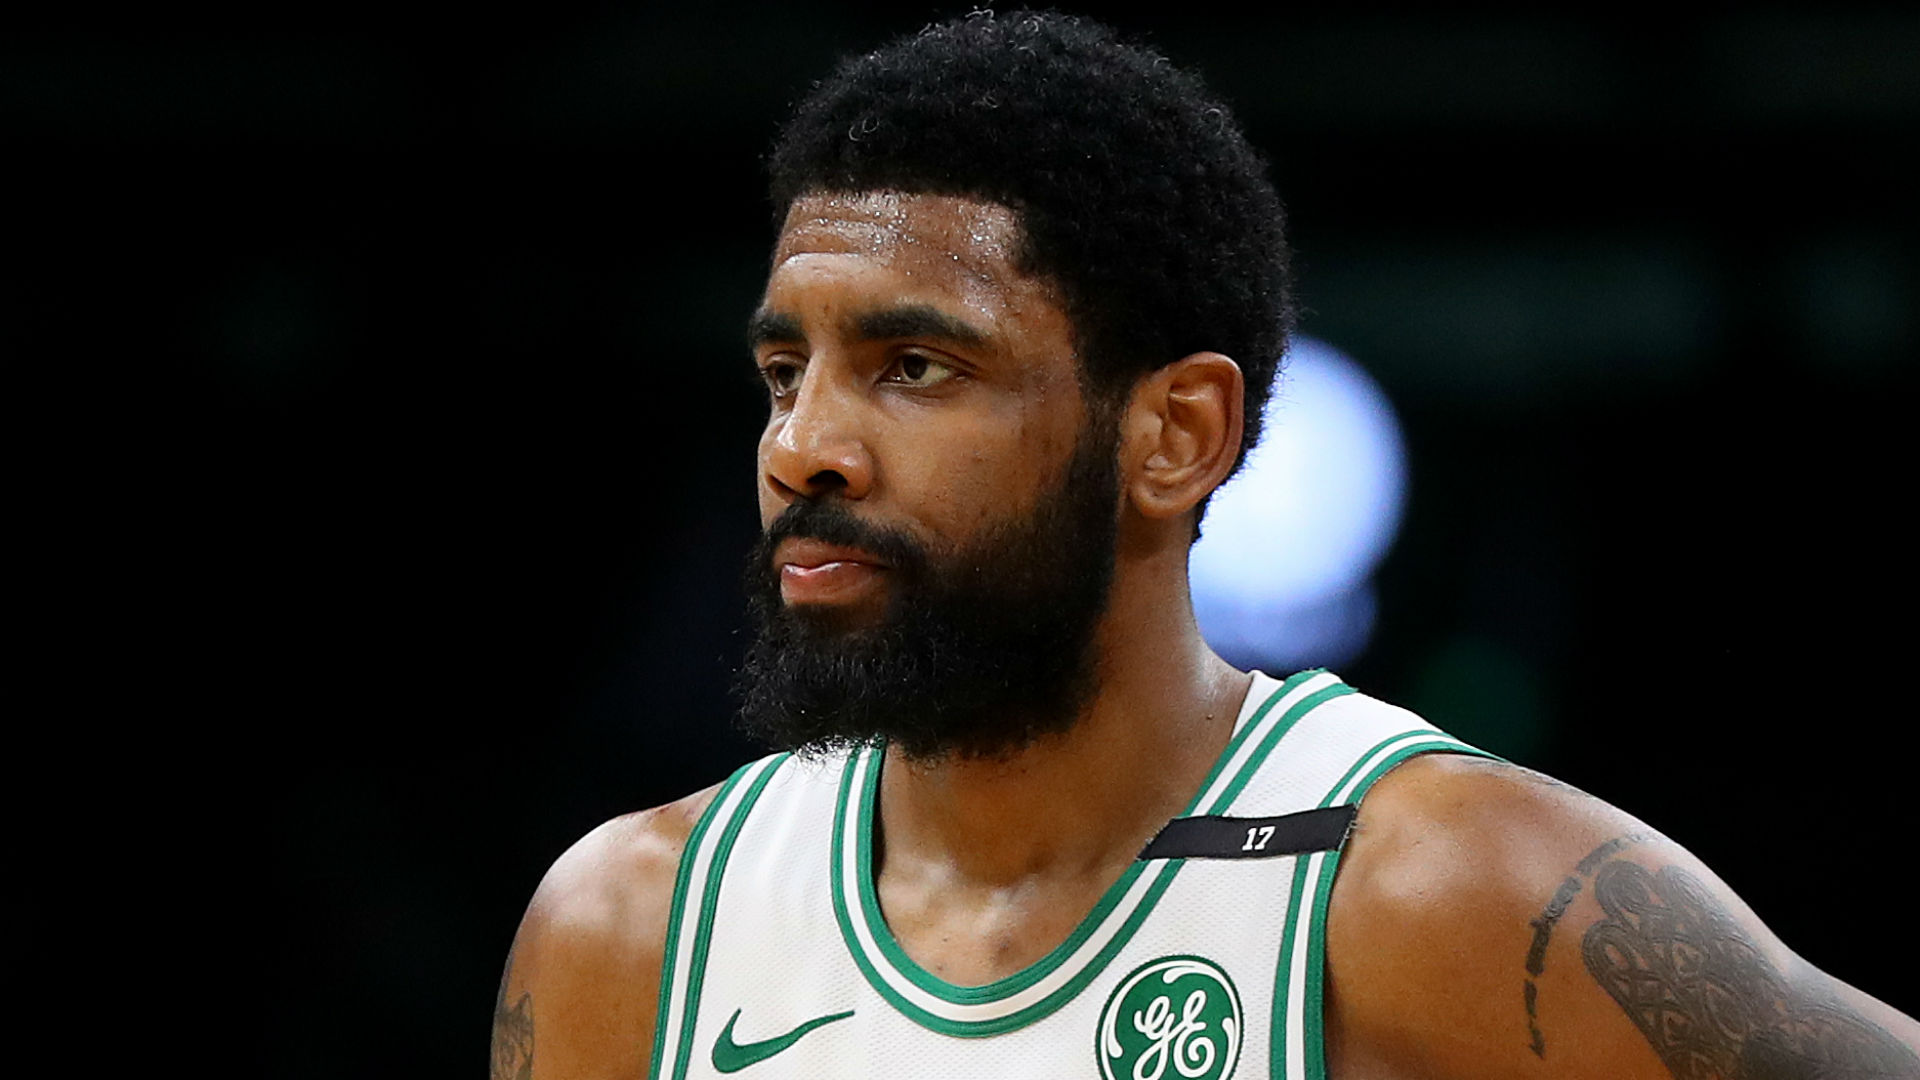 Nets star Kyrie Irving day-to-day with facial fracture